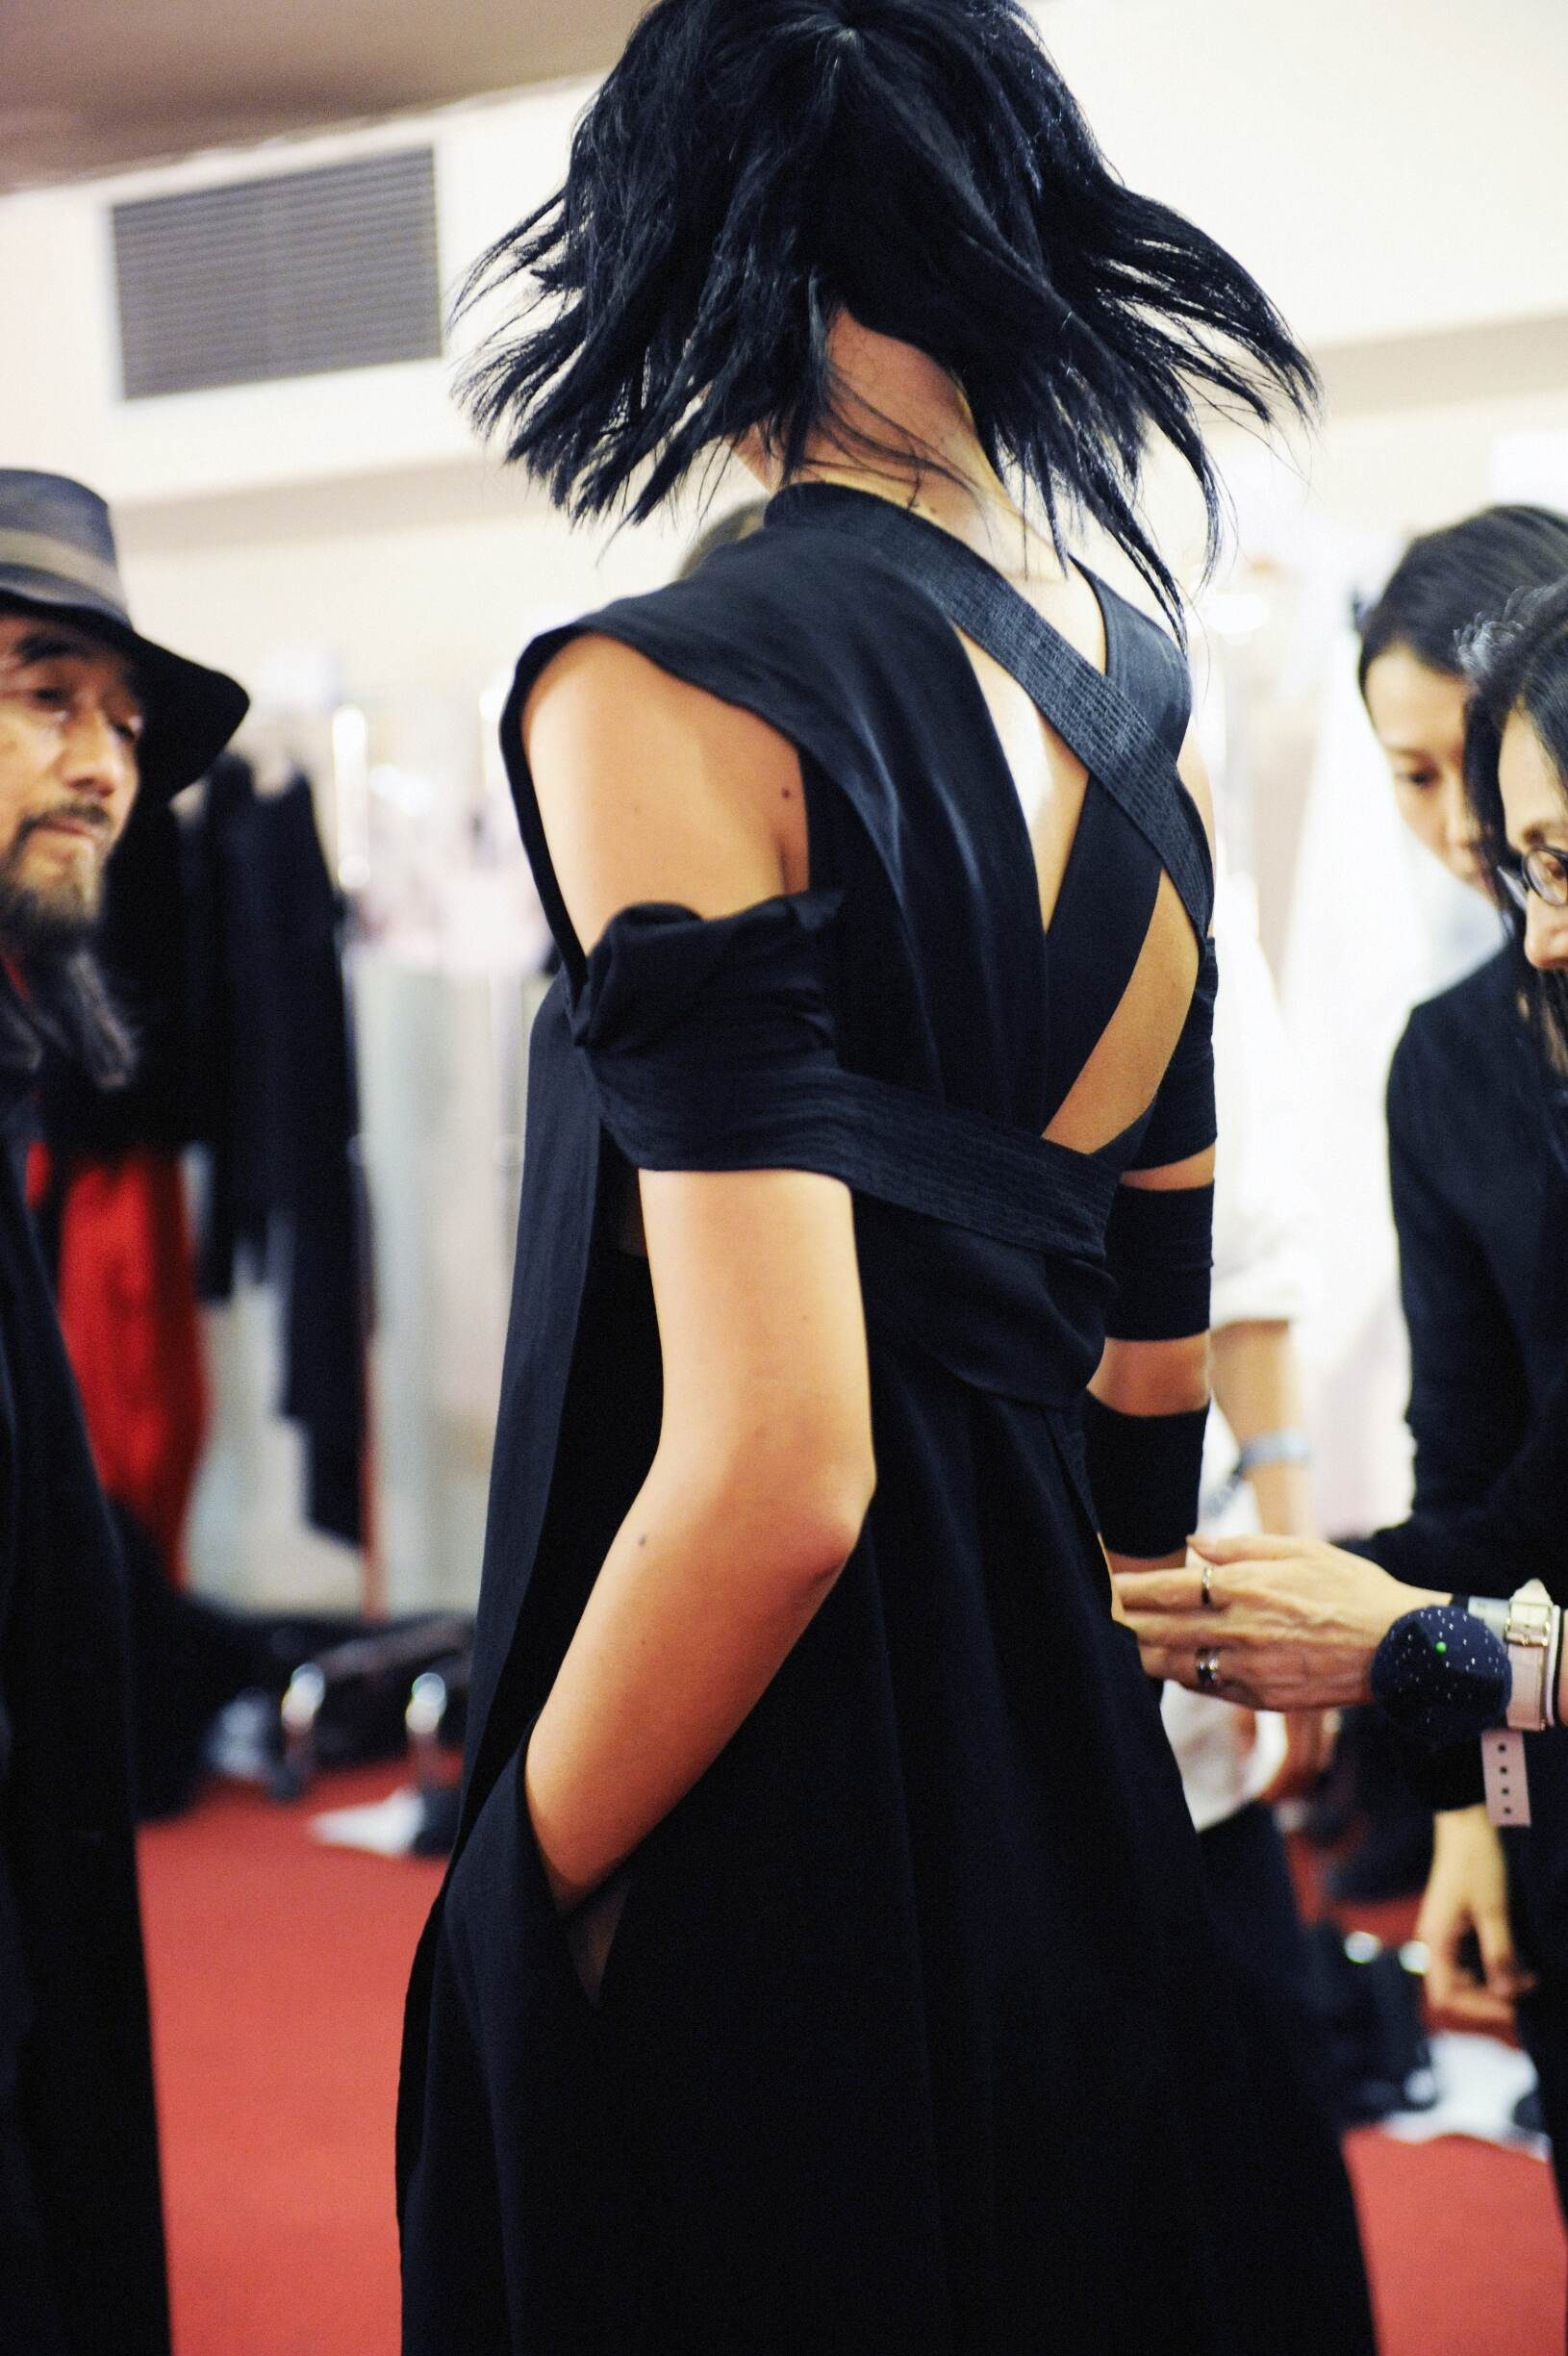 Backstage Women Yohji Yamamoto and Model